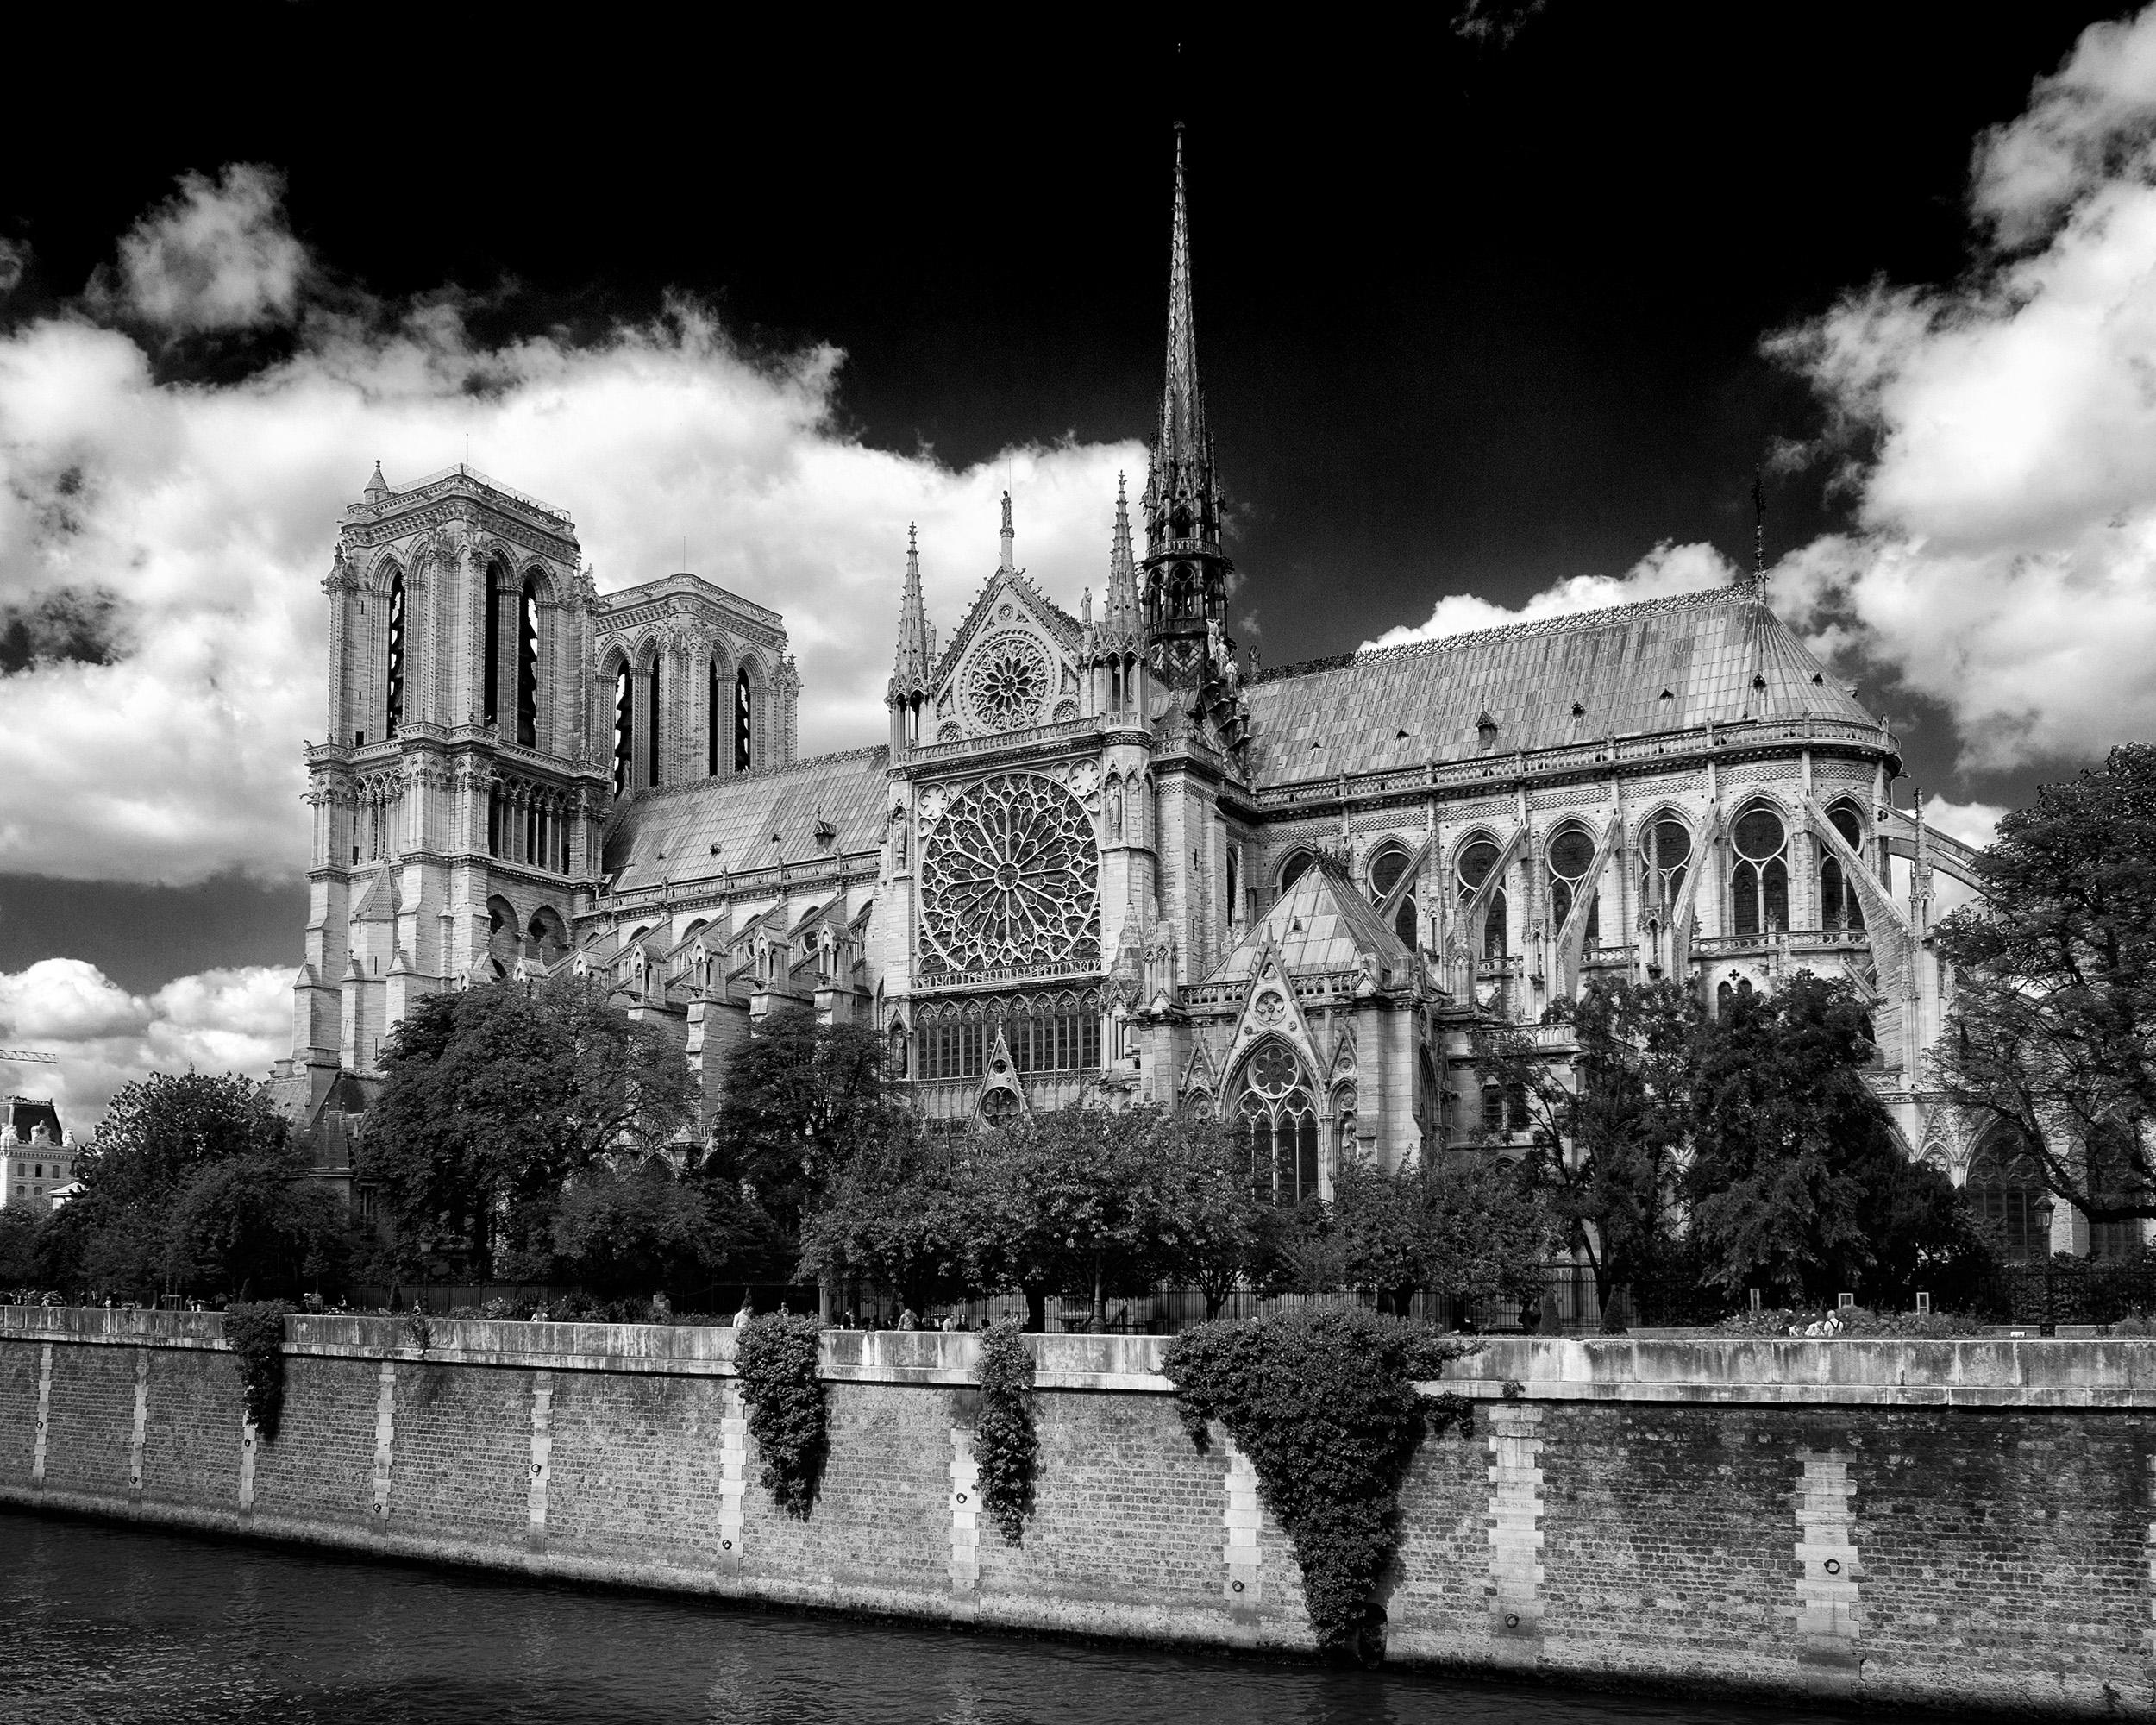 140901 Paris 029 as Smart Object-1 bw.jpg